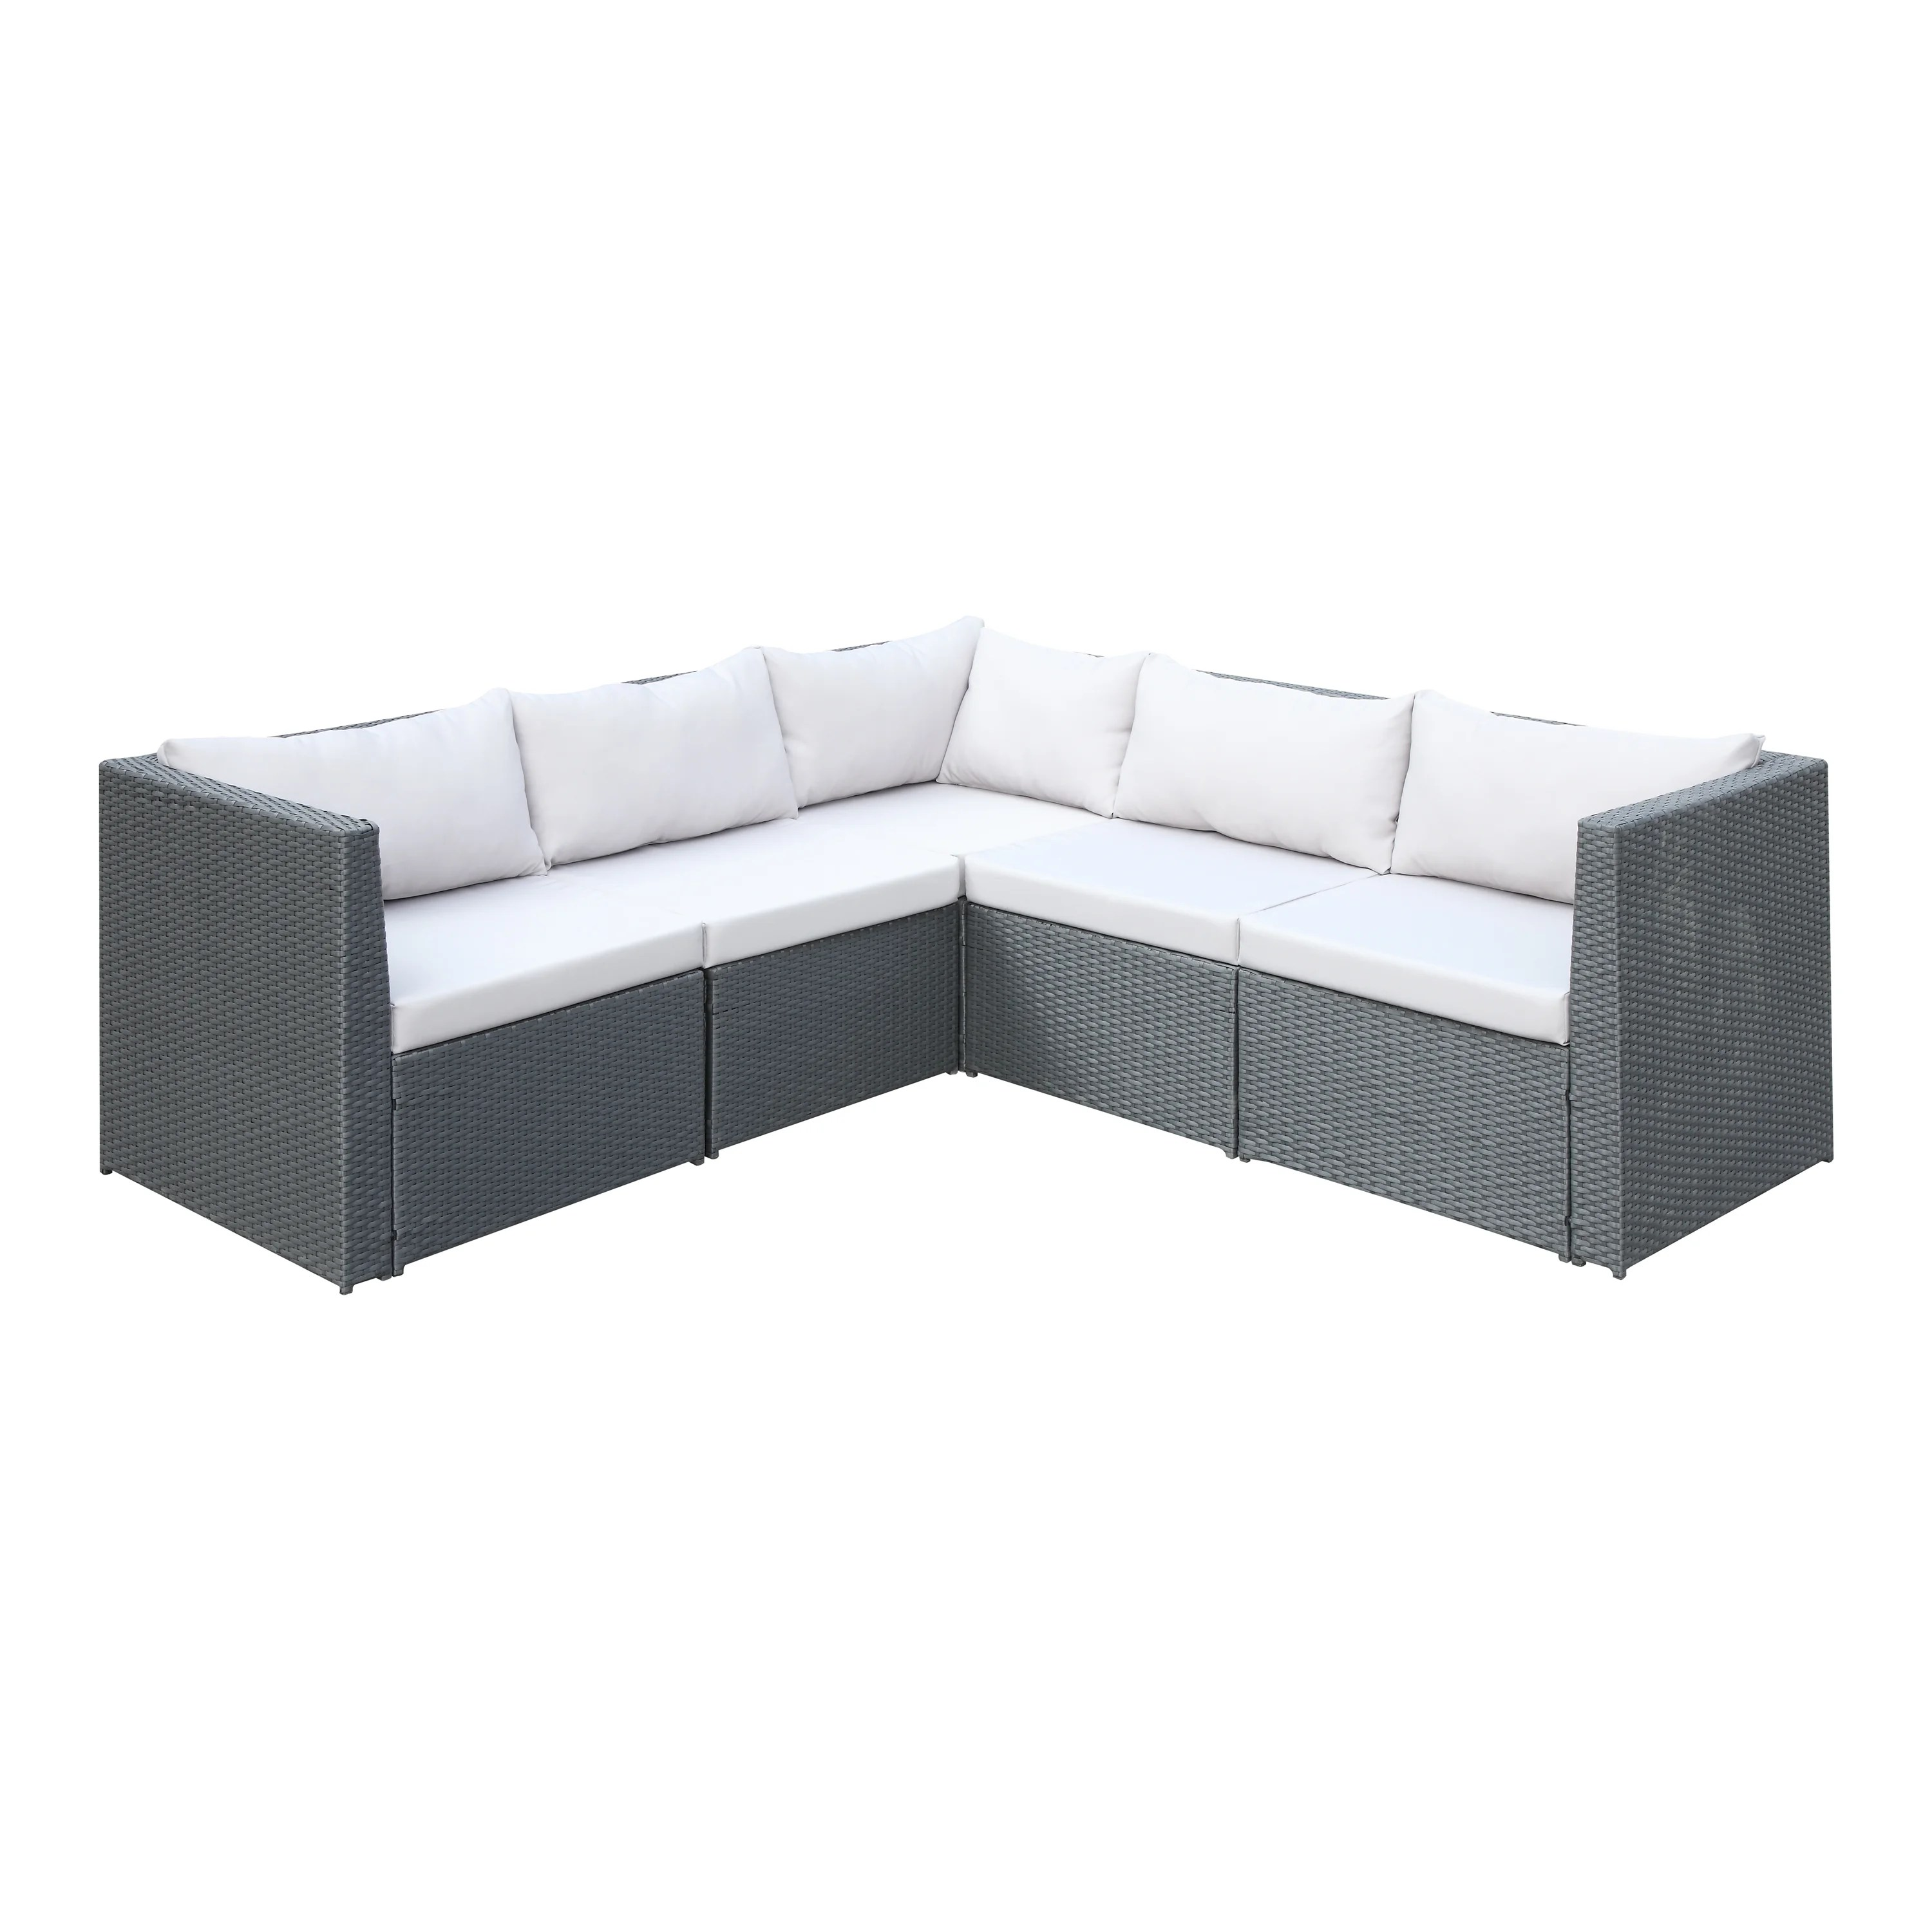 Patio Furniture Sale Mississauga Lachesis Patio Sectional With Cushions